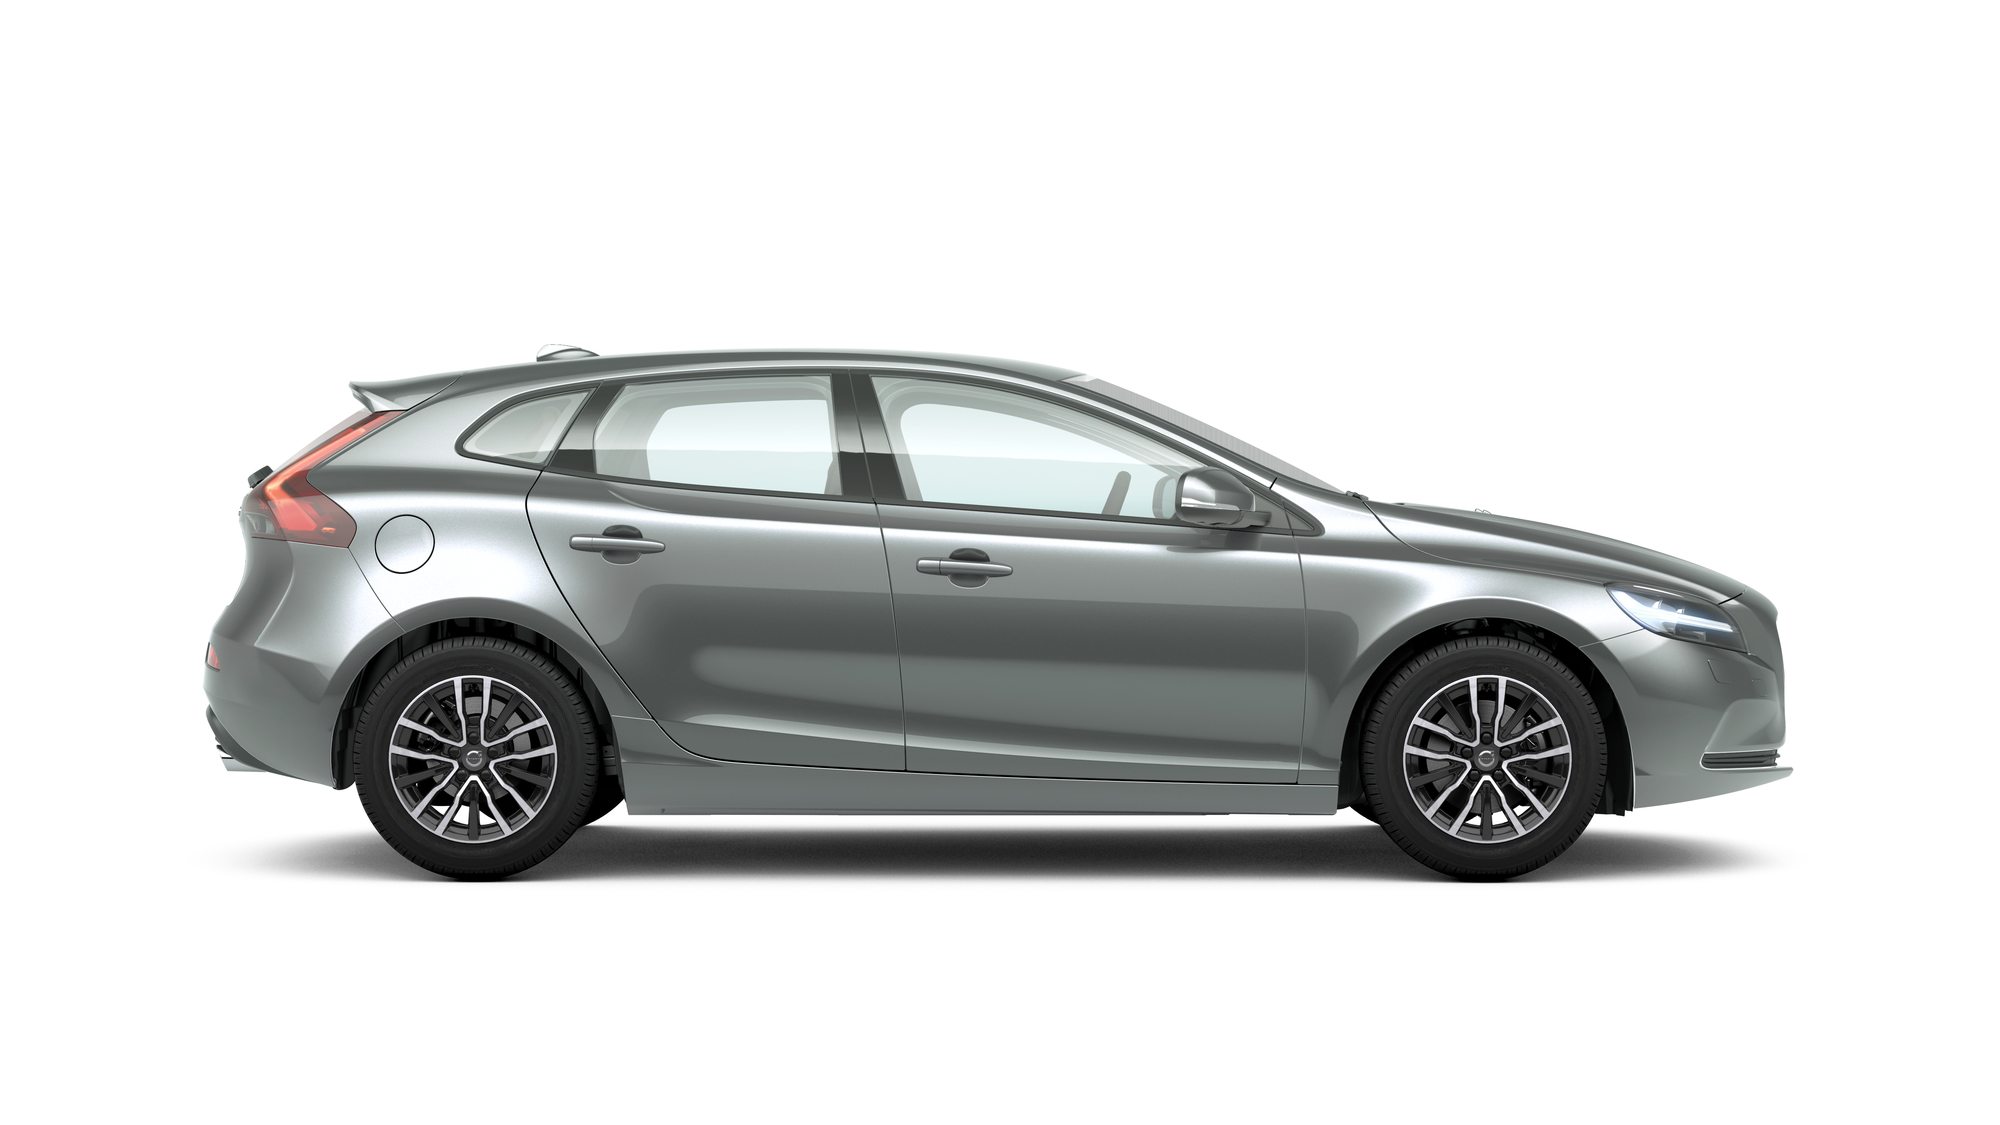 Side photo of the Volvo V40 in Electric Silver